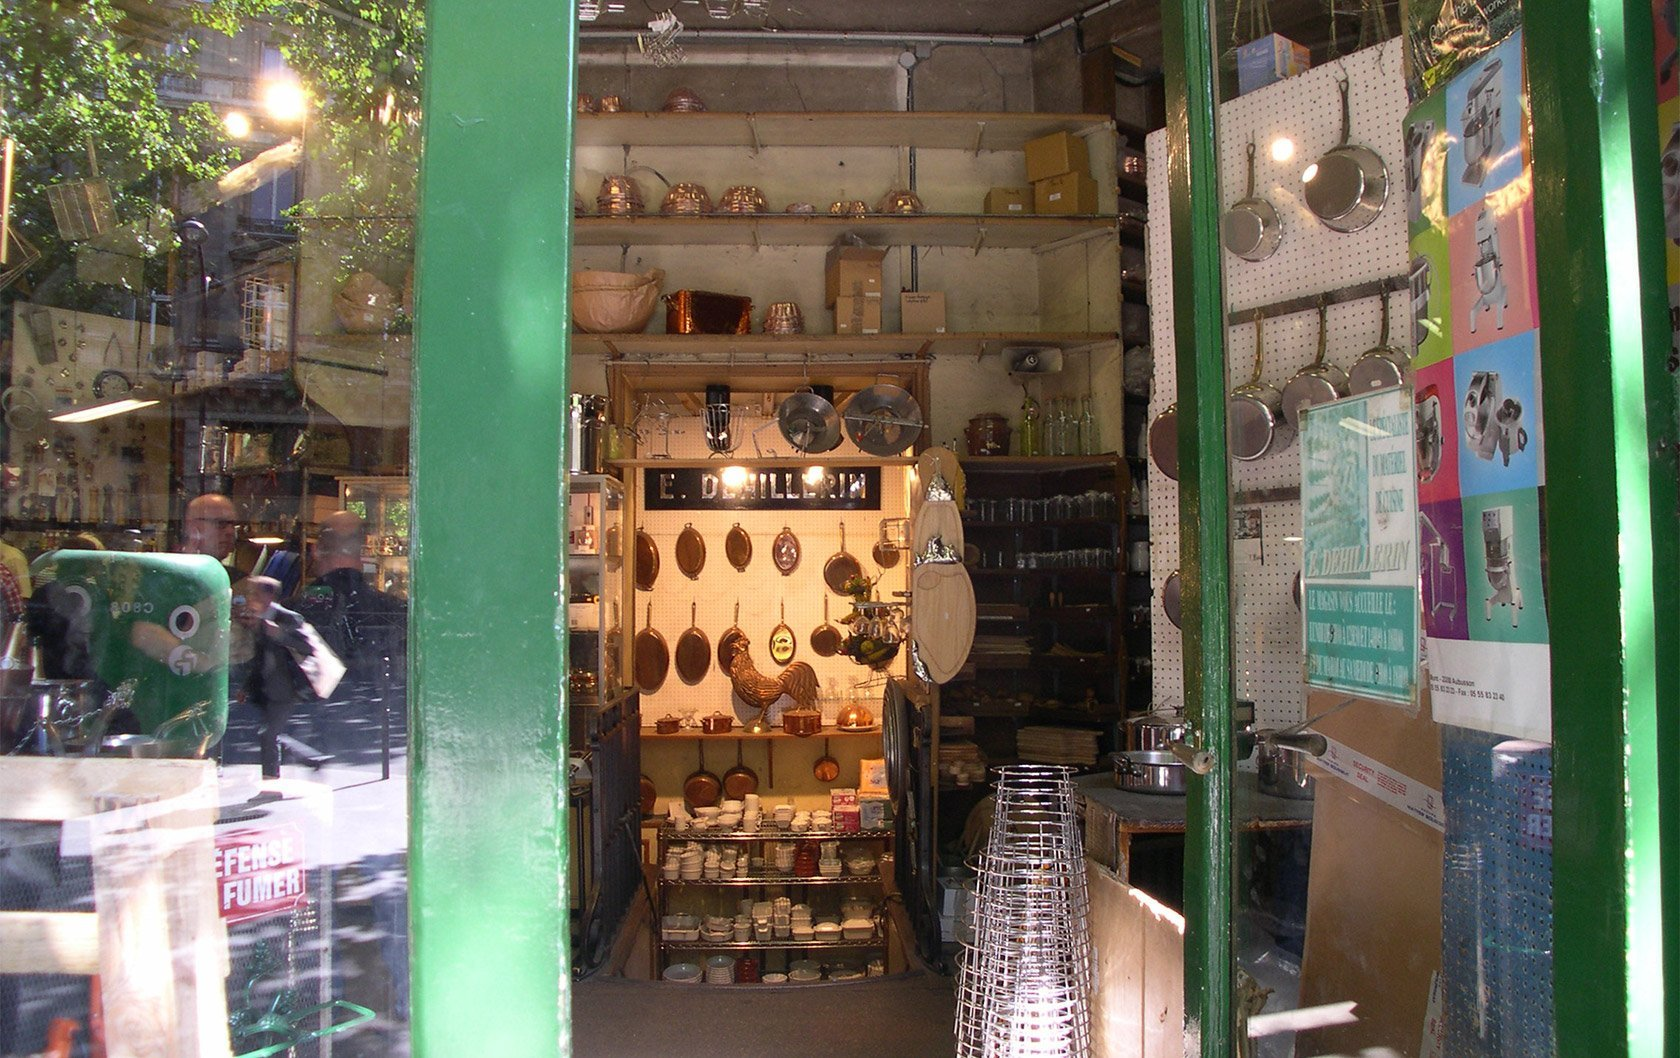 e-dehillerinr-kitchen-supplies-store-paris-1